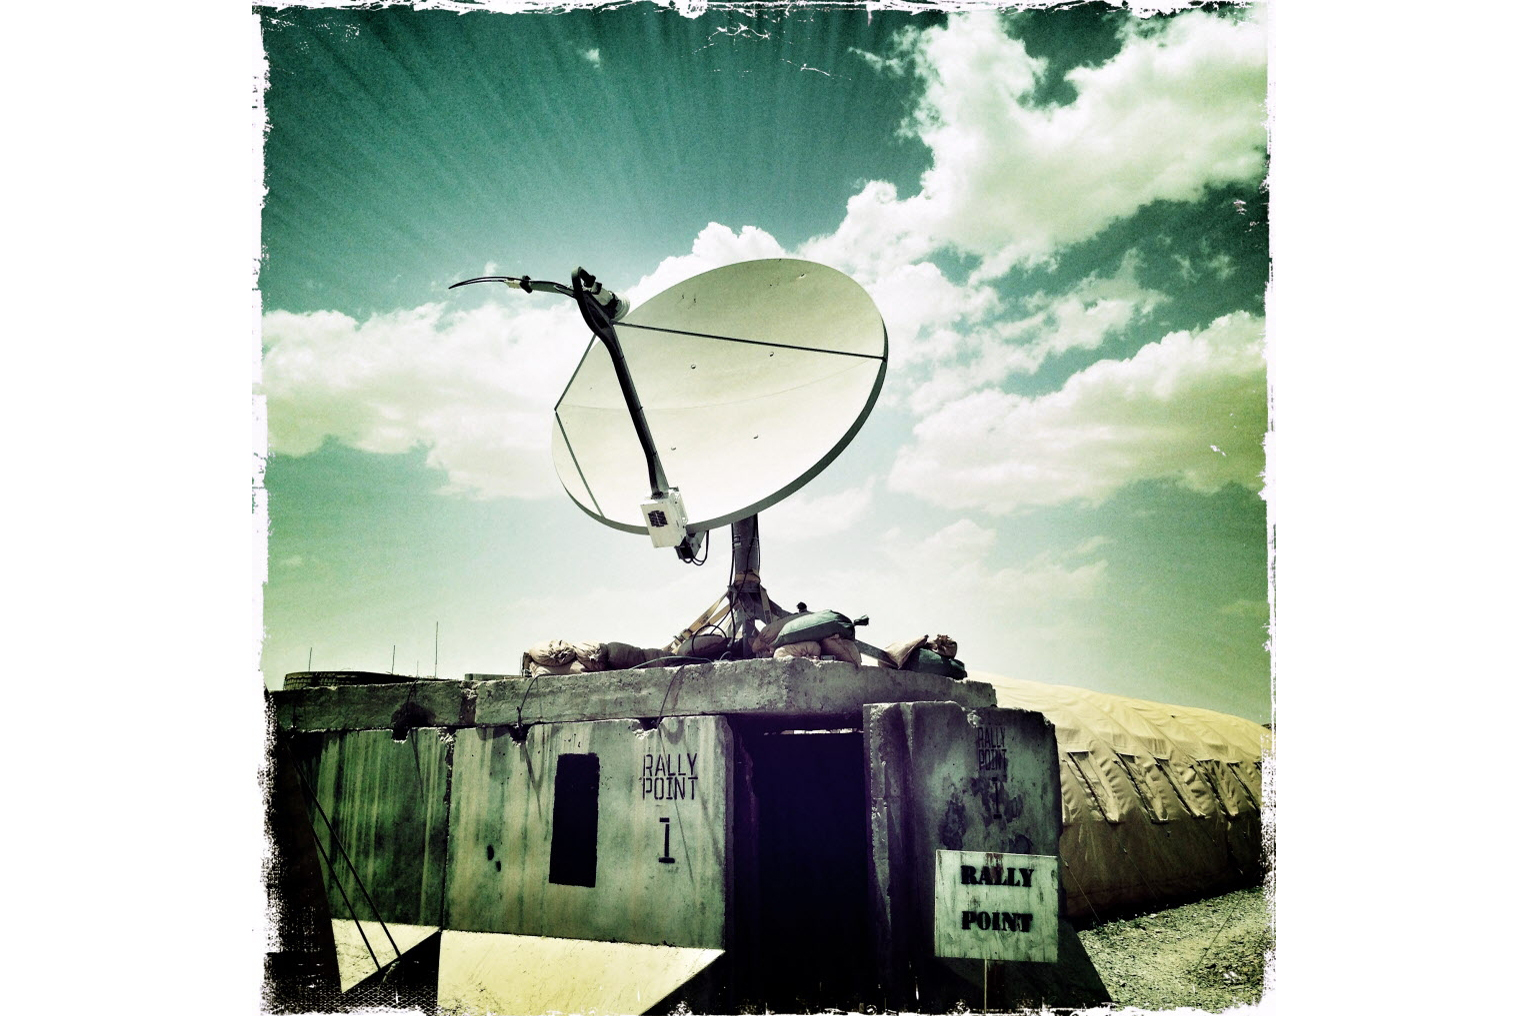 A communications satellite outside the living quarters for the soldiers based in the horn of Panjwai. The men have access to the Internet and can make regular telephone calls home, which can be both painful and helpful.